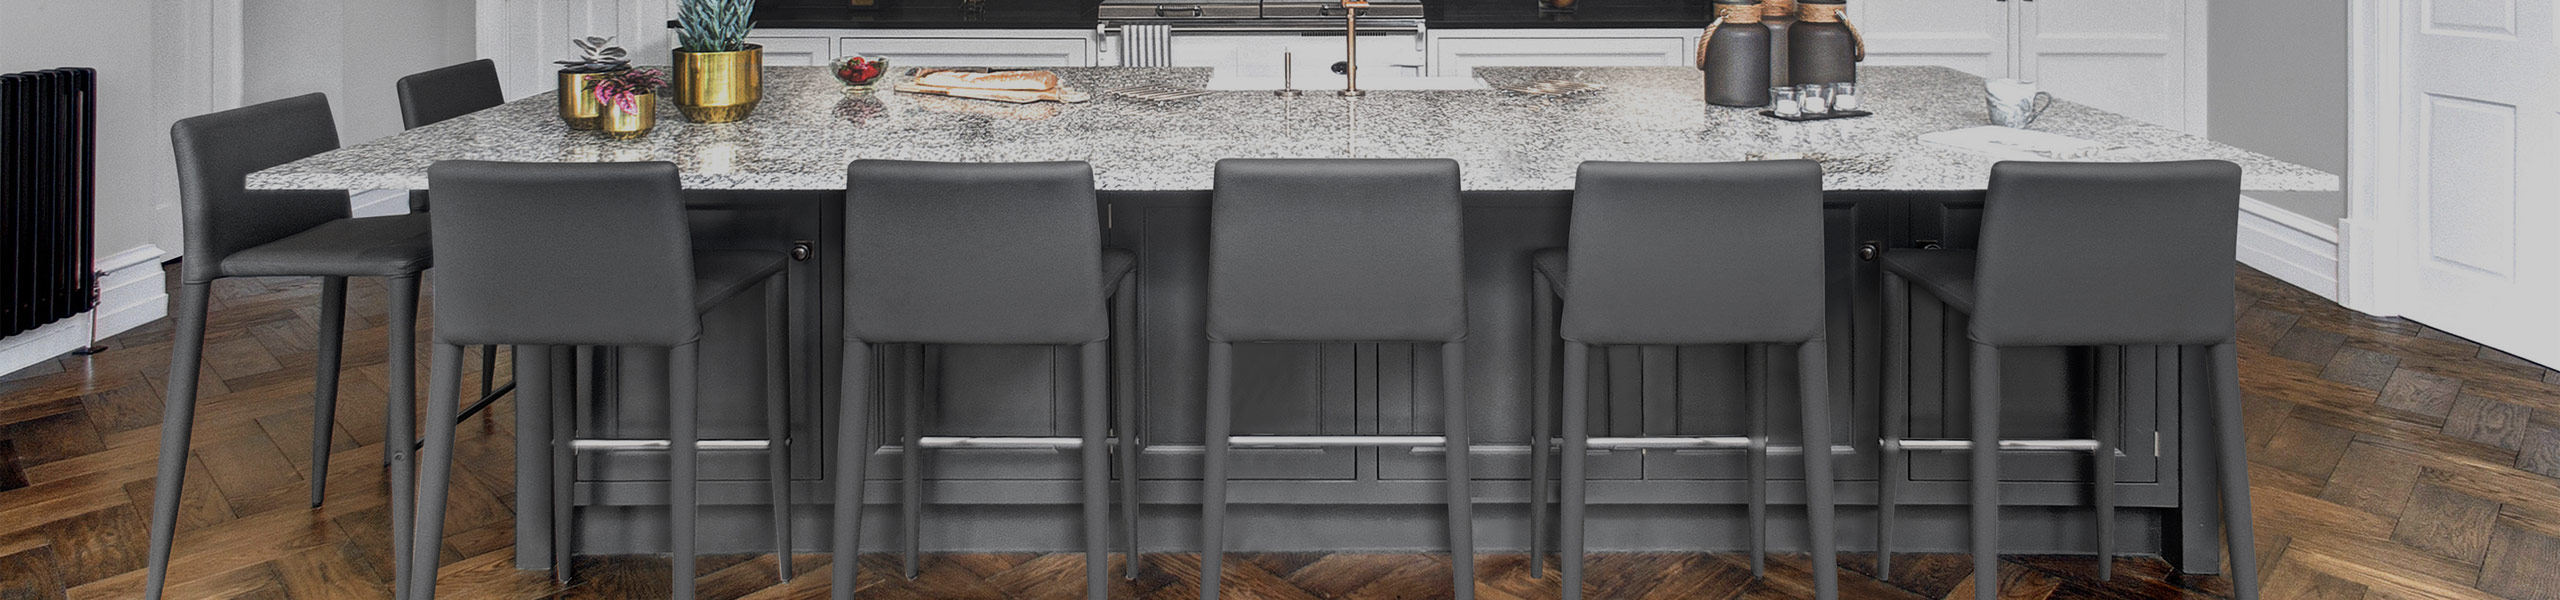 Healey Kitchen Stool Dark Grey Video Banner